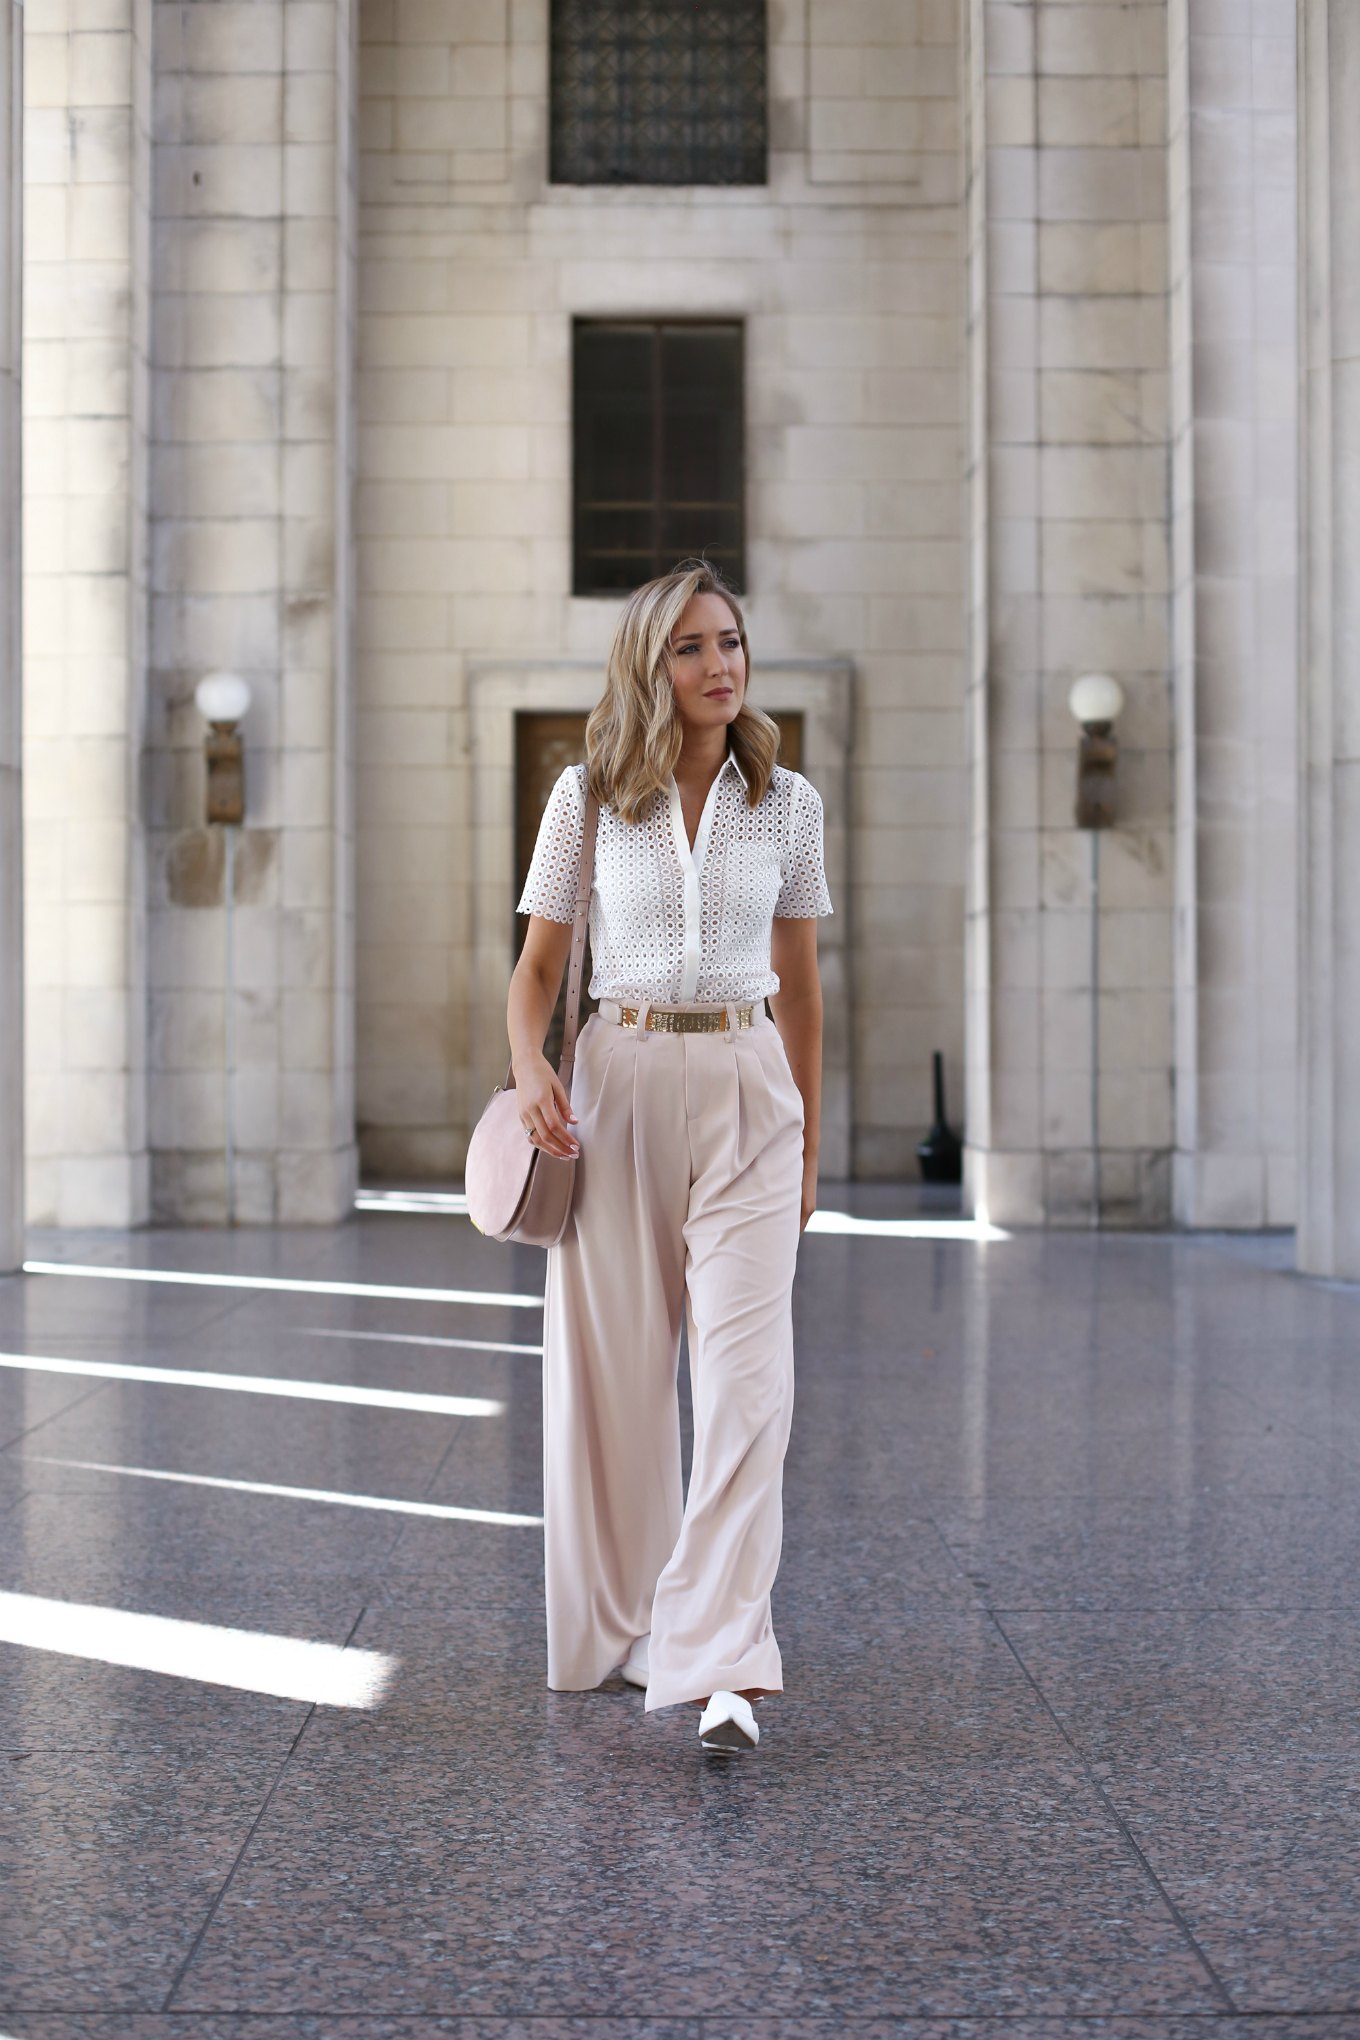 alice-and-olivia-blush-pleated-wide-leg-pants-reiss-white-eyelet-lace-short-sleeve-shirt-summer-stylish-work-wear-professional-business-attire-style-fashion-blog-mary-orton2-680x1020@2x